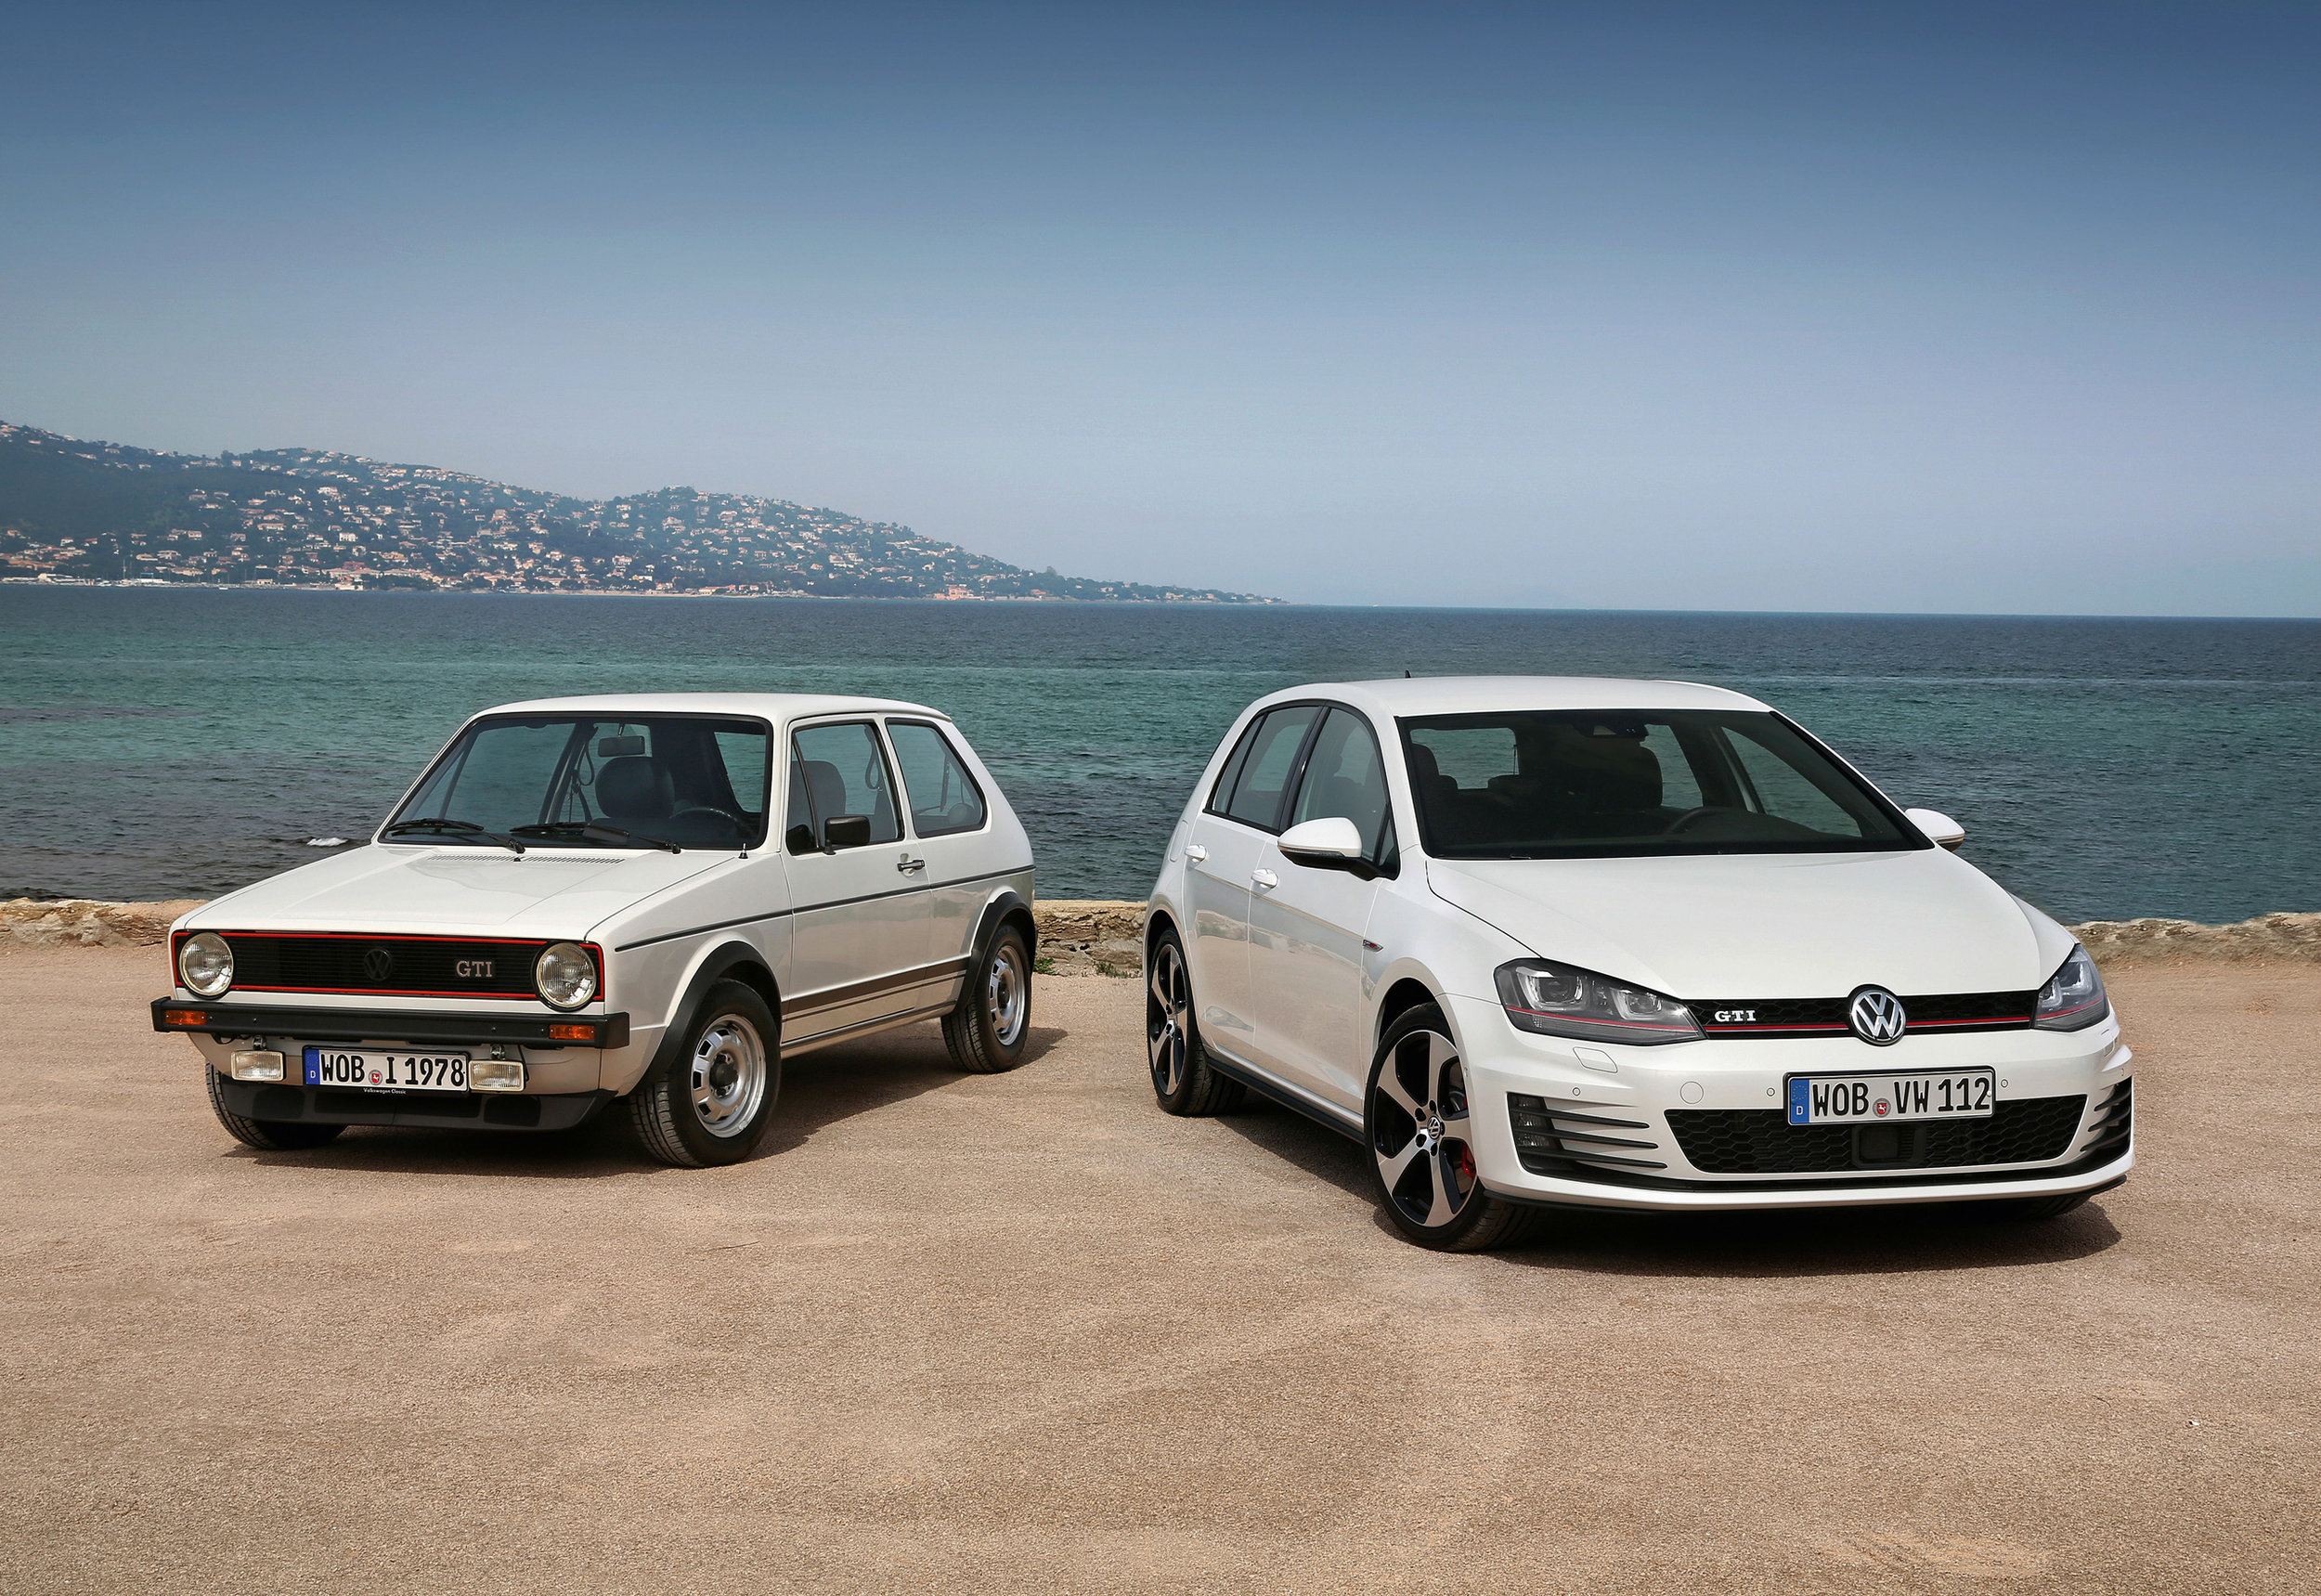 Golf-GTI-MK-1-and-7_01.jpg